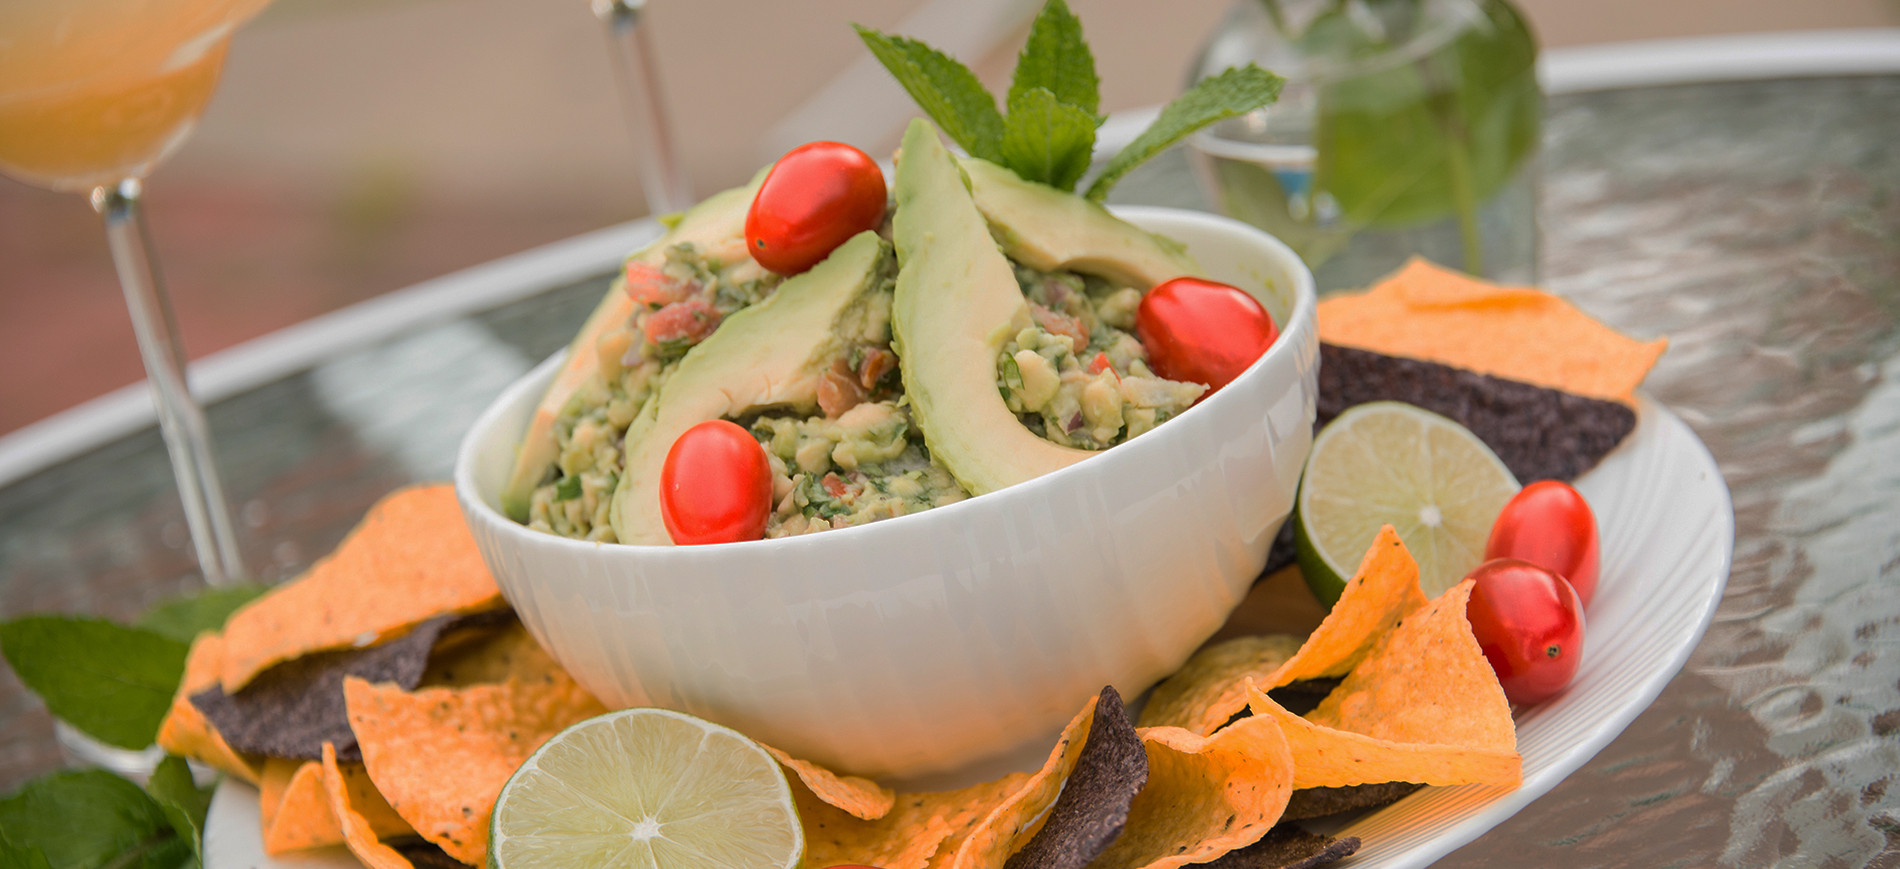 Guacamole with cherry tomato garnish in white bowl surrounded by yellow and blue corn chips